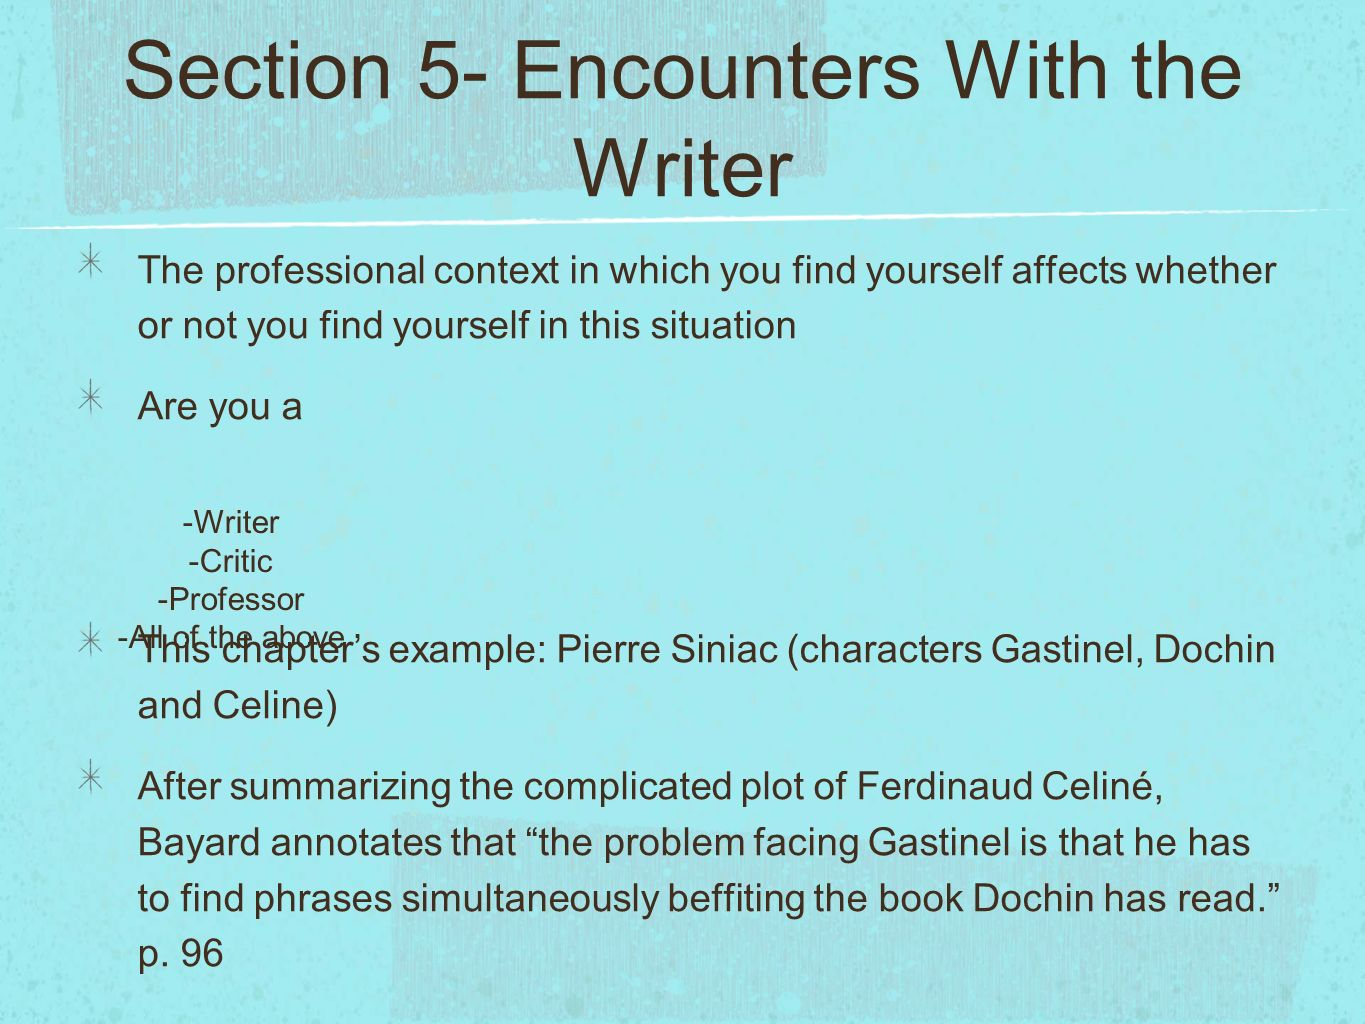 Section 5- Encounters With the Writer The professional context in which you find yourself affects whether or not you find yourself in this situation Are you a This chapters example: Pierre Siniac (characters Gastinel, Dochin and Celine) After summarizing the complicated plot of Ferdinaud Celiné, Bayard annotates that the problem facing Gastinel is that he has to find phrases simultaneously beffiting the book Dochin has read.